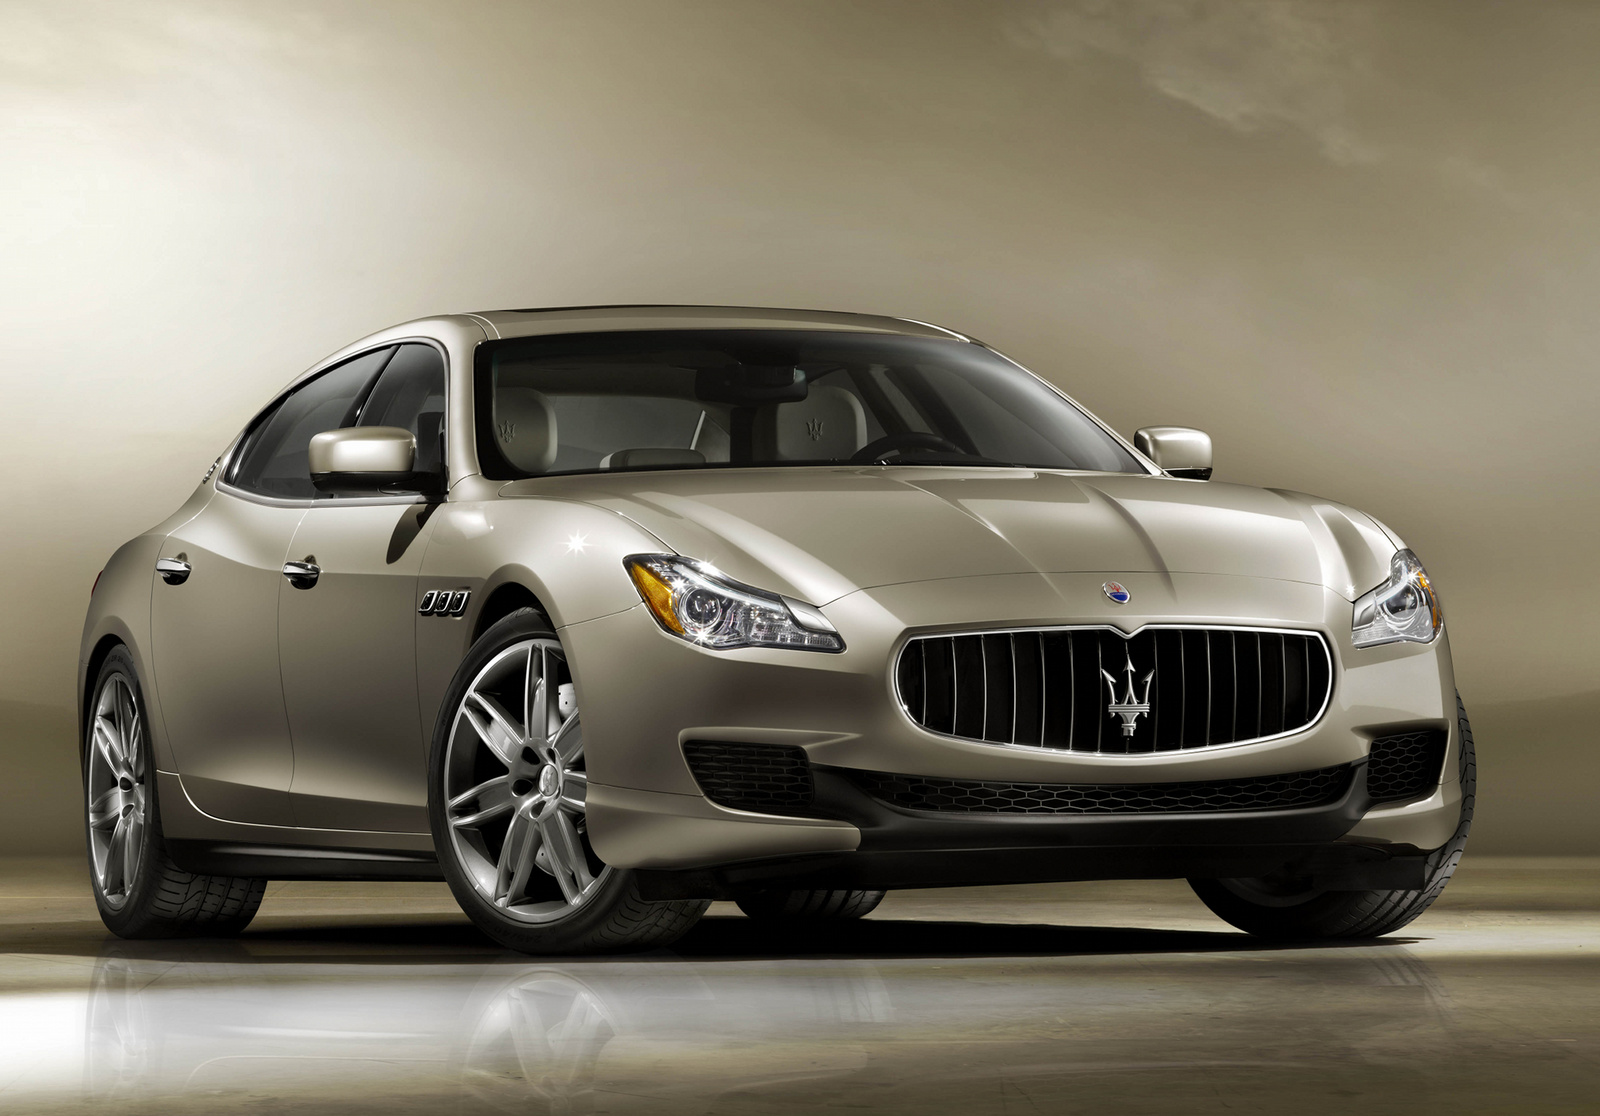 2013 maserati quattroporte review cargurus. Black Bedroom Furniture Sets. Home Design Ideas